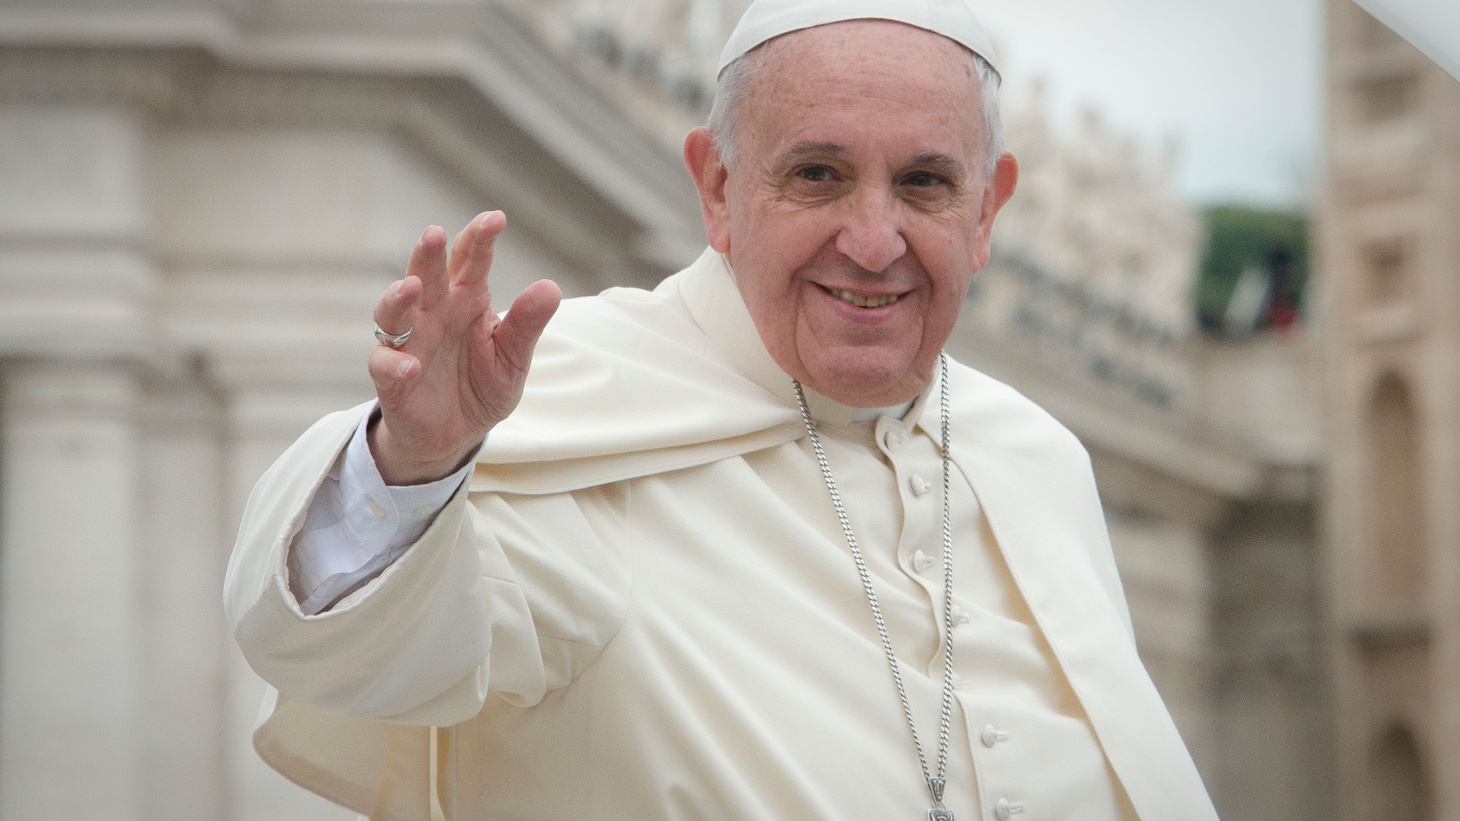 Pope Francis continues to shake up the Vatican — and the rest of the Roman Catholic world. We hear how the Pope from Argentina is shifting church power from Europe and the US to poor nations in the under-developed world.